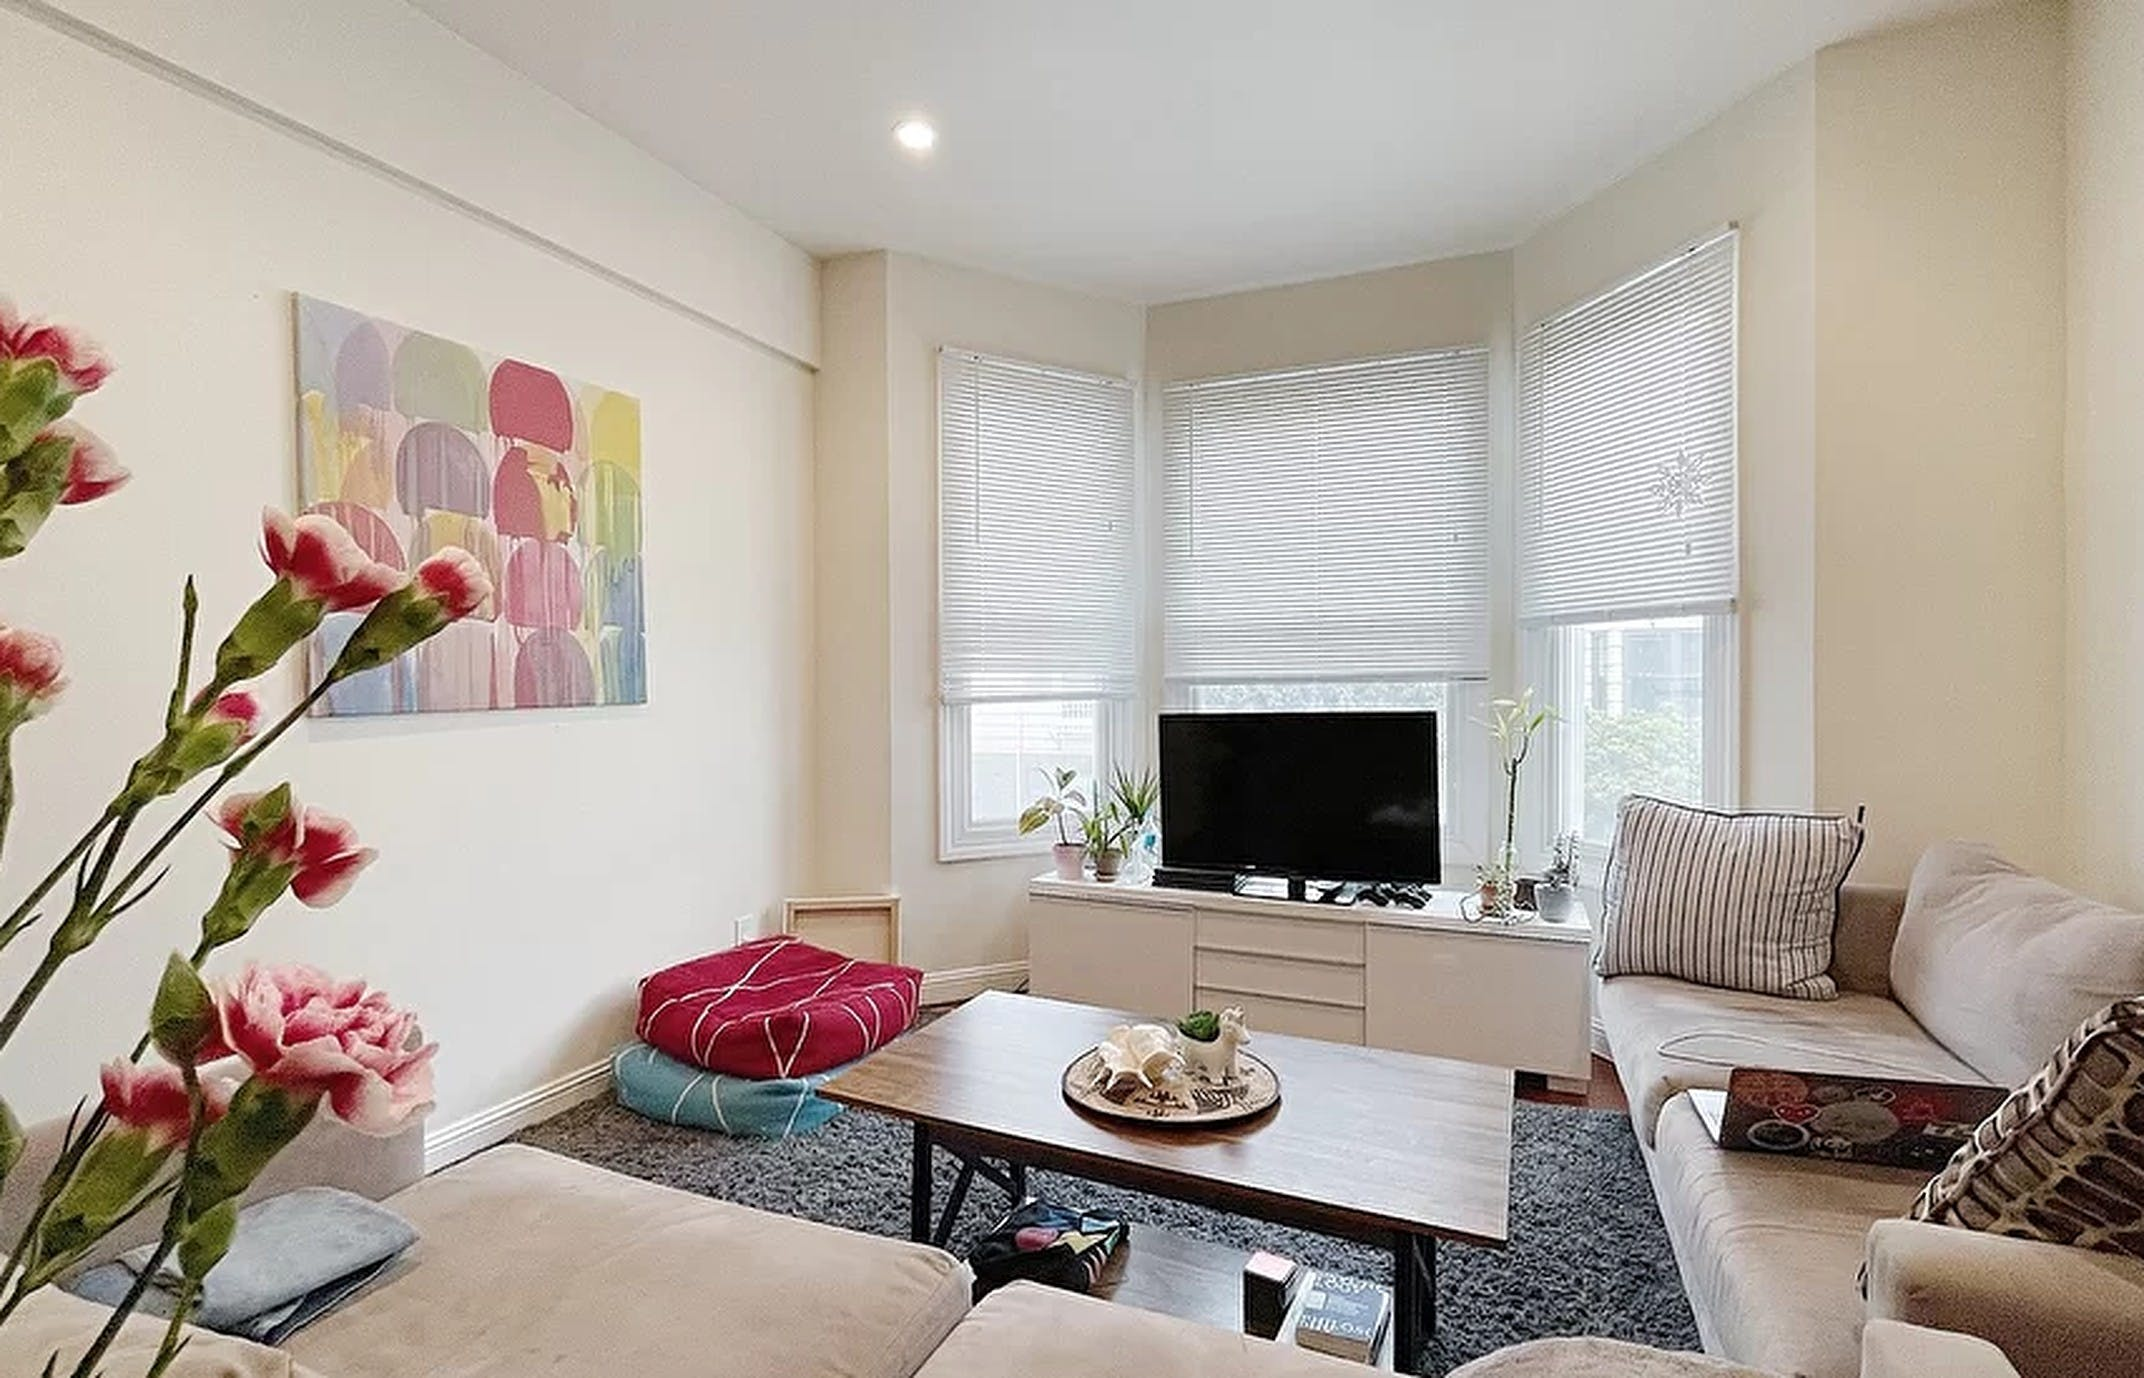 8 Residents   Larking St. - Lower Nob Hill   Comfortable Bright House w/ Coworking + Terrace + BBQ